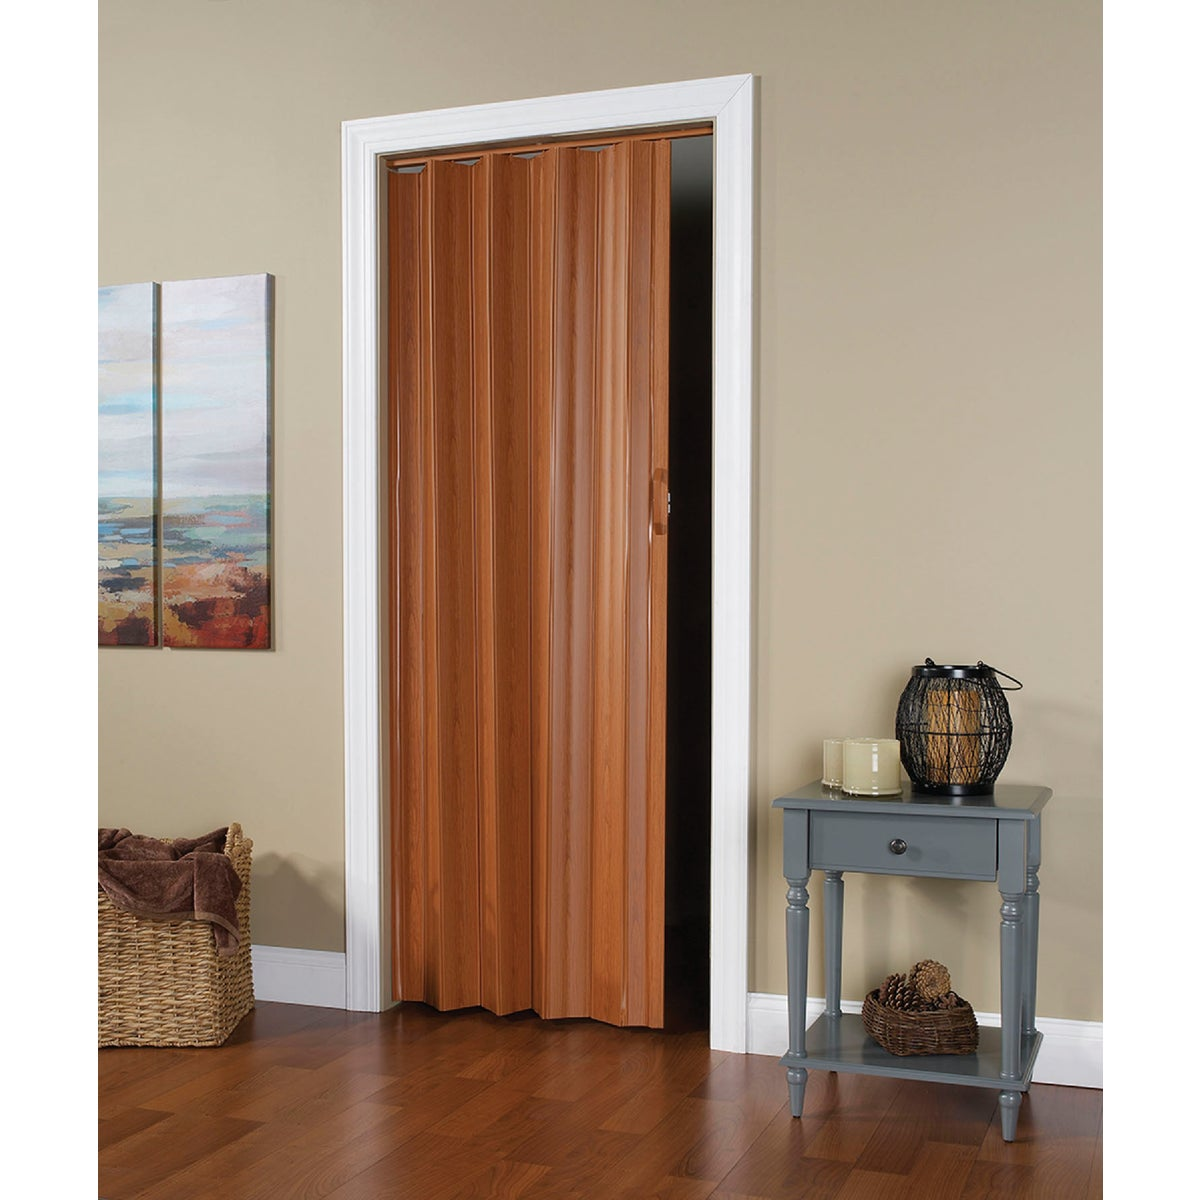 24-36X80 FRTWD FOLD DOOR - VS3280FL by L T L Home Products